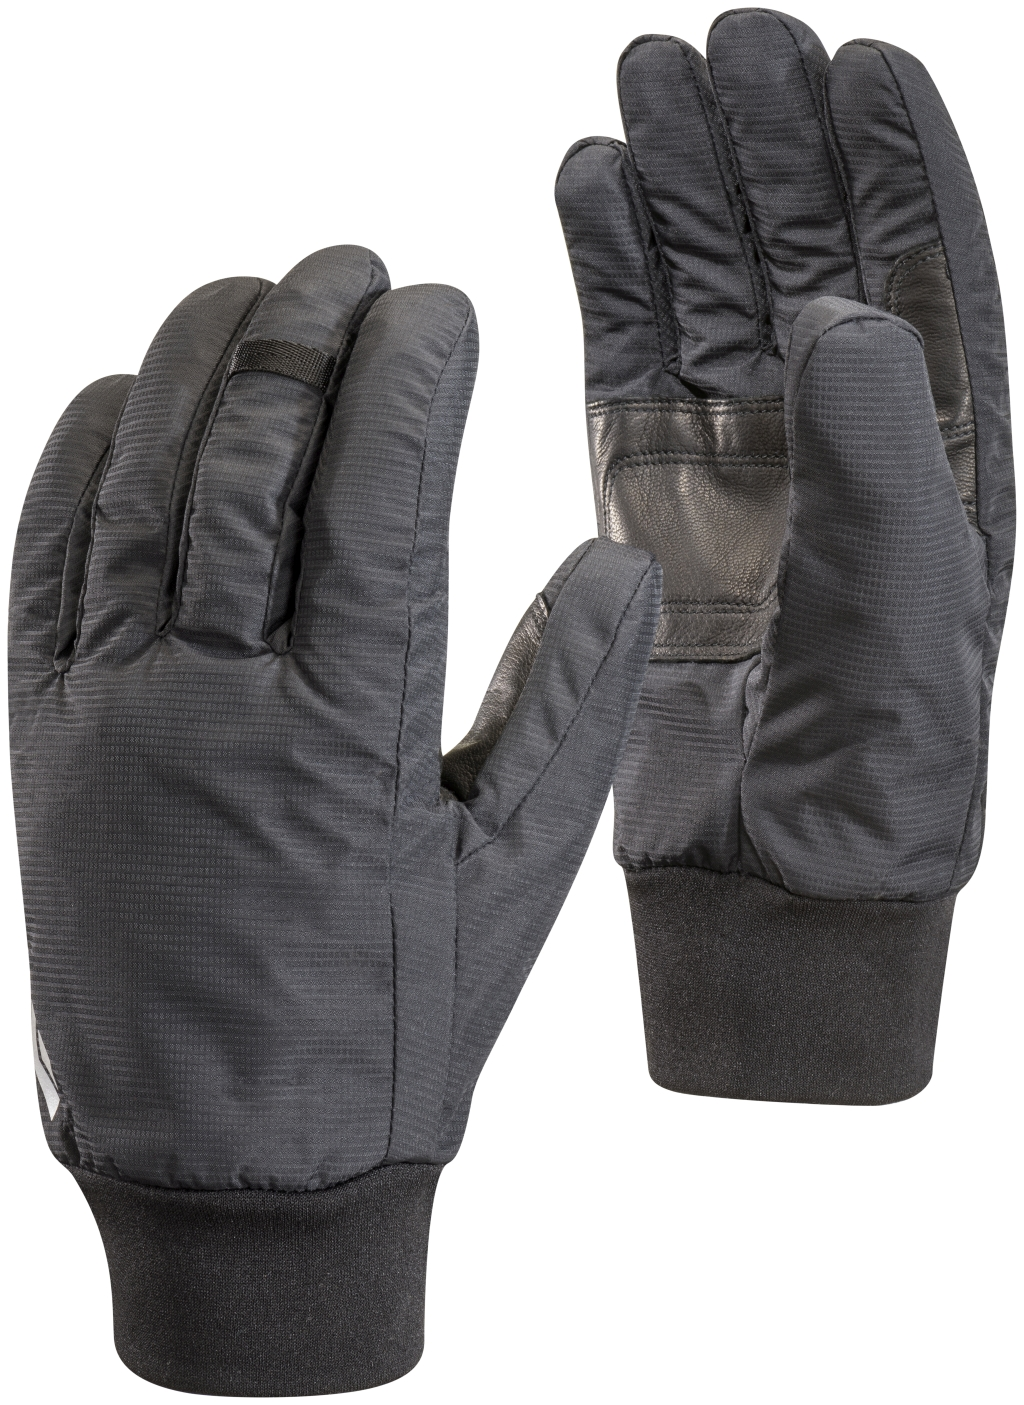 Black Diamond Lightweight Waterproof Gloves Black-30